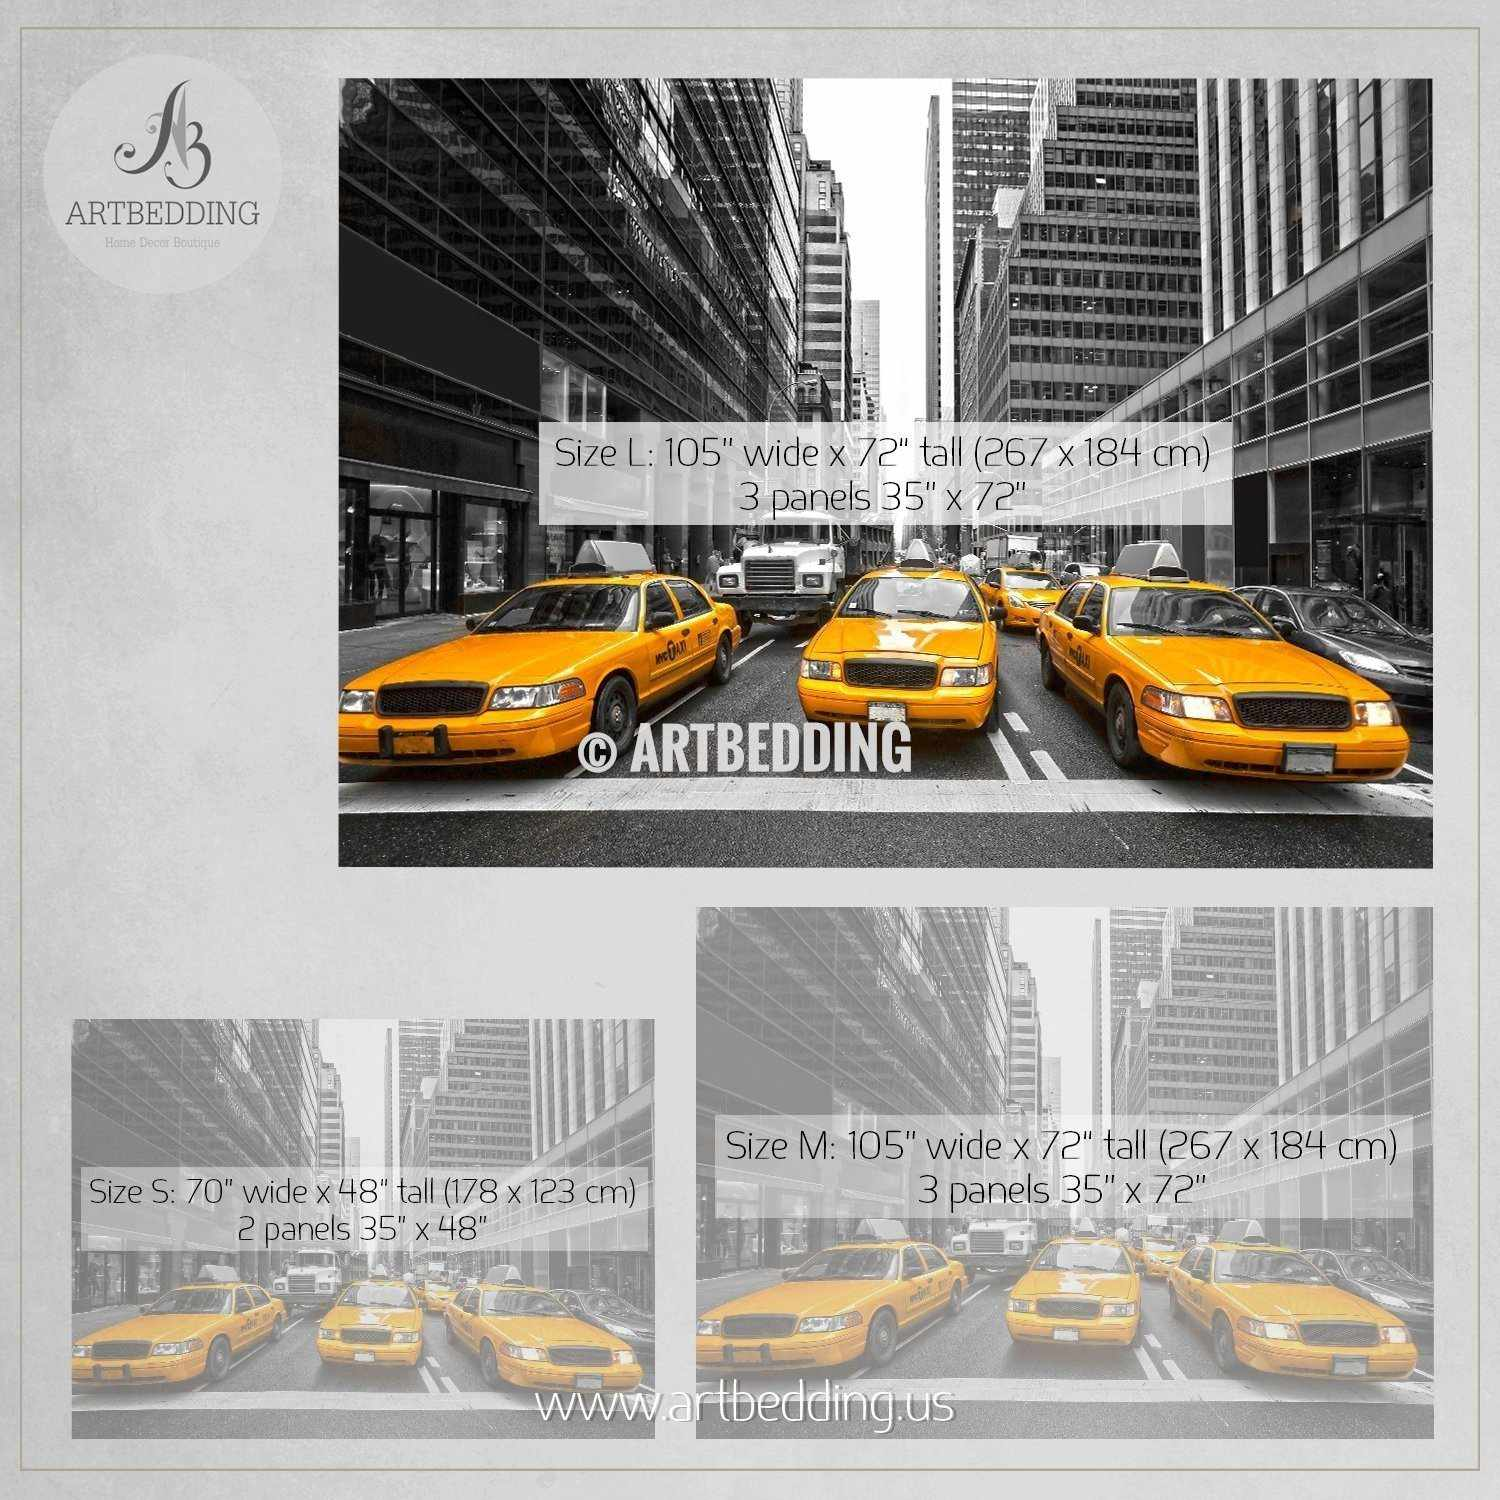 wall murals peel and stick self adhesive vinyl hd print tagged yellow cabs in the city wall mural usa photo mural usa wall decor wall